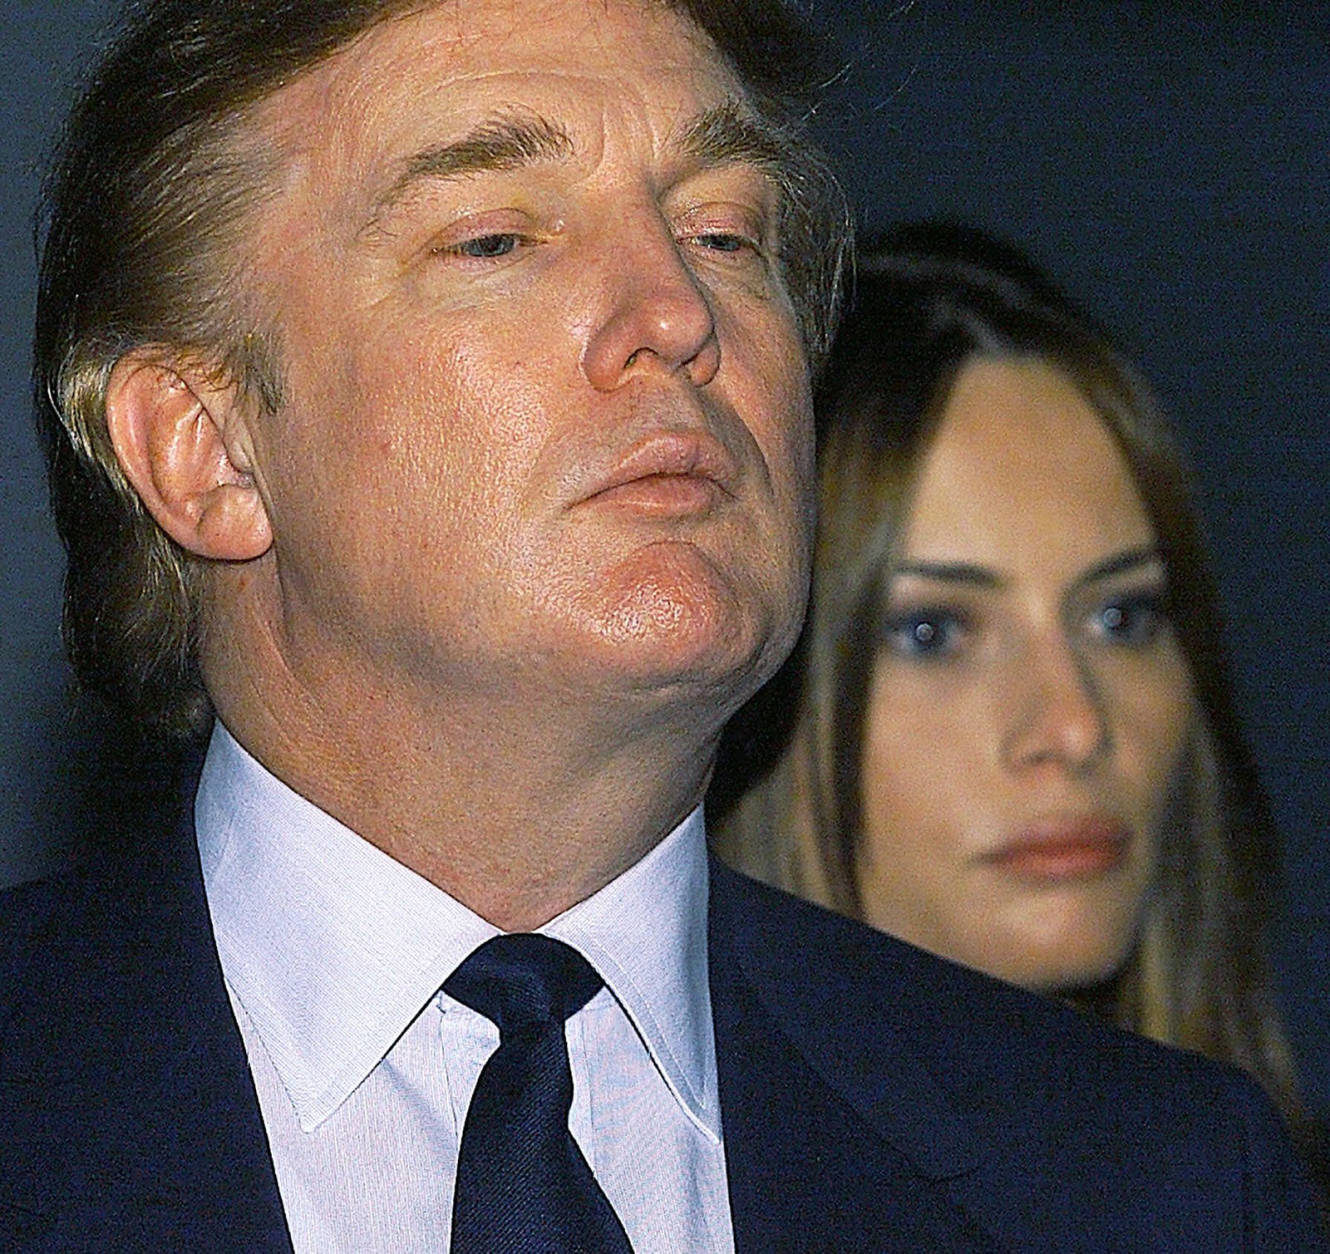 New York billionaire real estate tycoon Donald Trump and his 26-year-old girlfriend model Melania Knauss listen to recorded Nazi propaganda as they tour the Museum of Tolerance in Los Angeles on Tuesday, Dec. 7, 1999. Trump, who is contemplating a presidential run is in the Southern California area to address Reform Party leaders and to give a motivational speech in Orange County. (AP Photo/Damian Dovarganes)